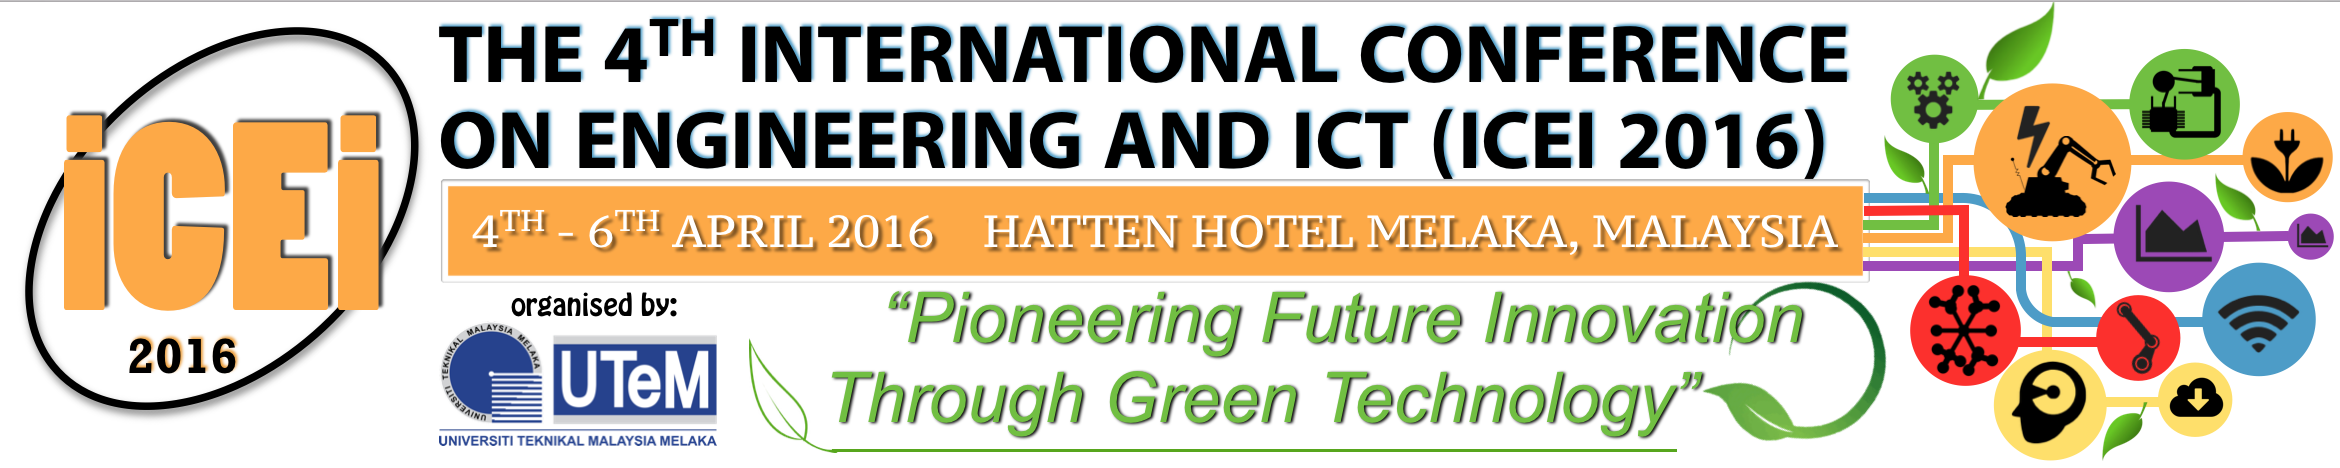 ICEI2016 | International Conference on Engineering and ICT